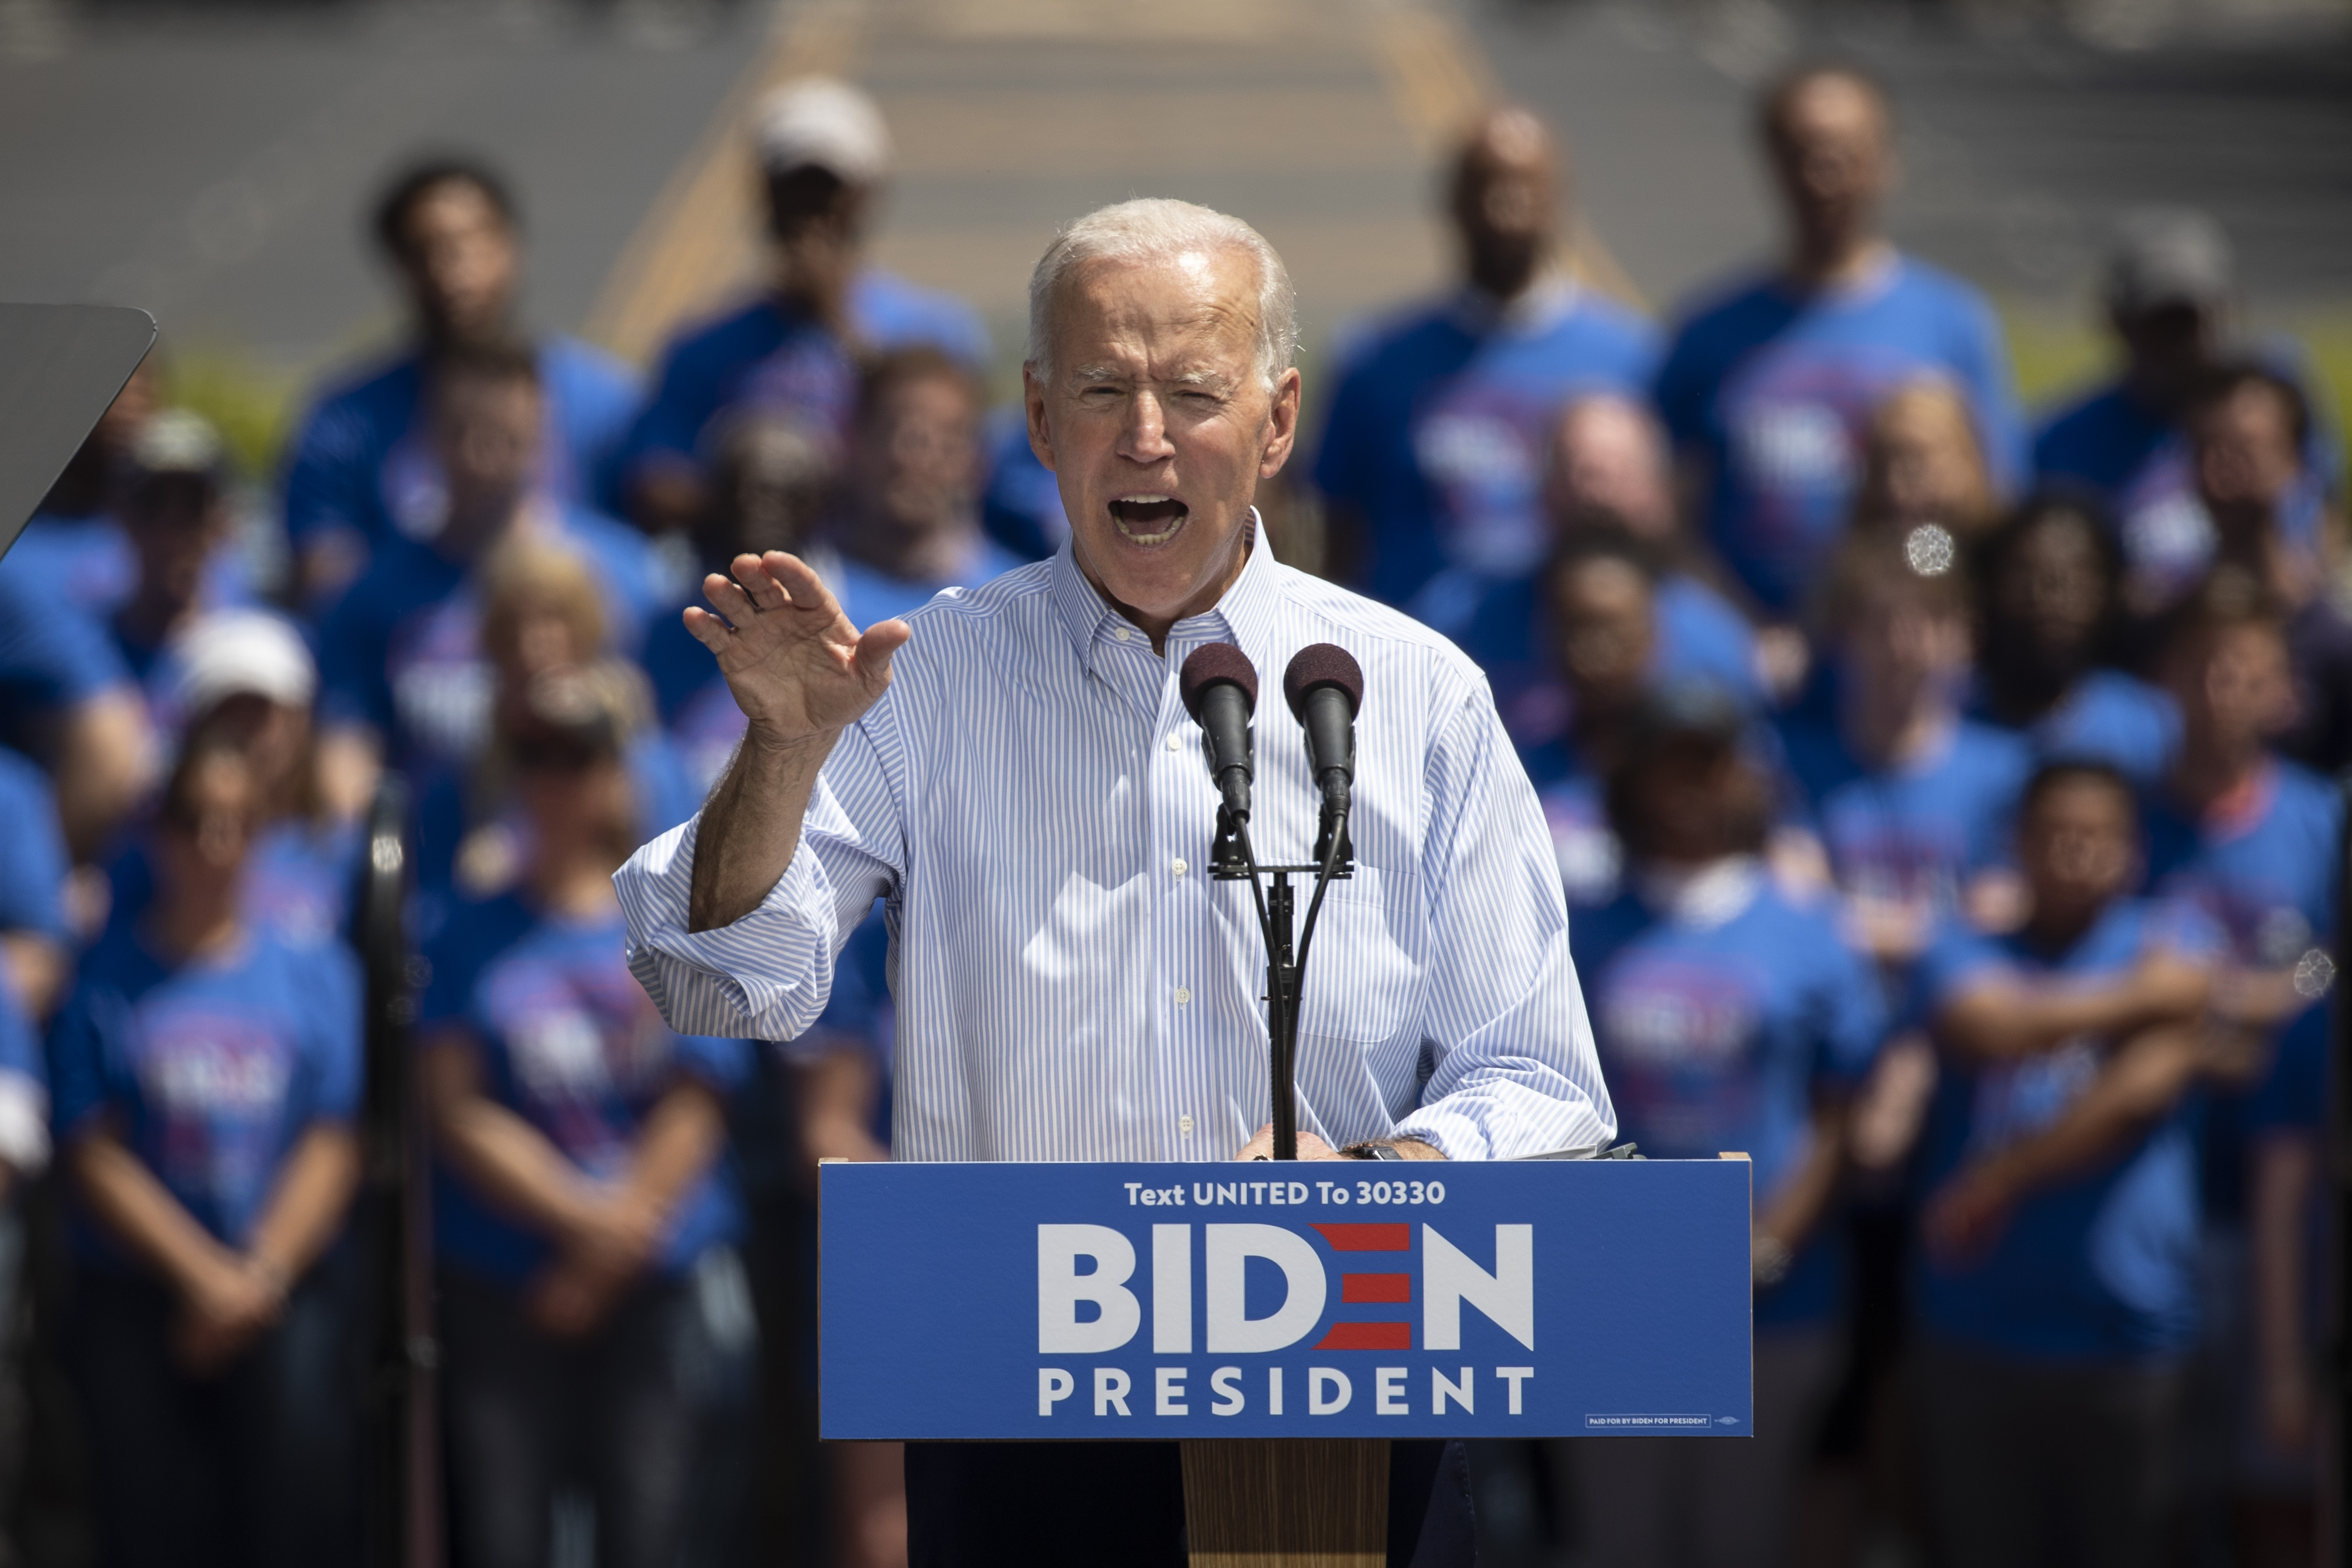 Former U.S. Vice President and Democratic presidential candidate Joe Biden speaks during a campaign kickoff rally, May 18, 2019 in Philadelphia, Pennsylvania. (Drew Angerer/Getty Images)